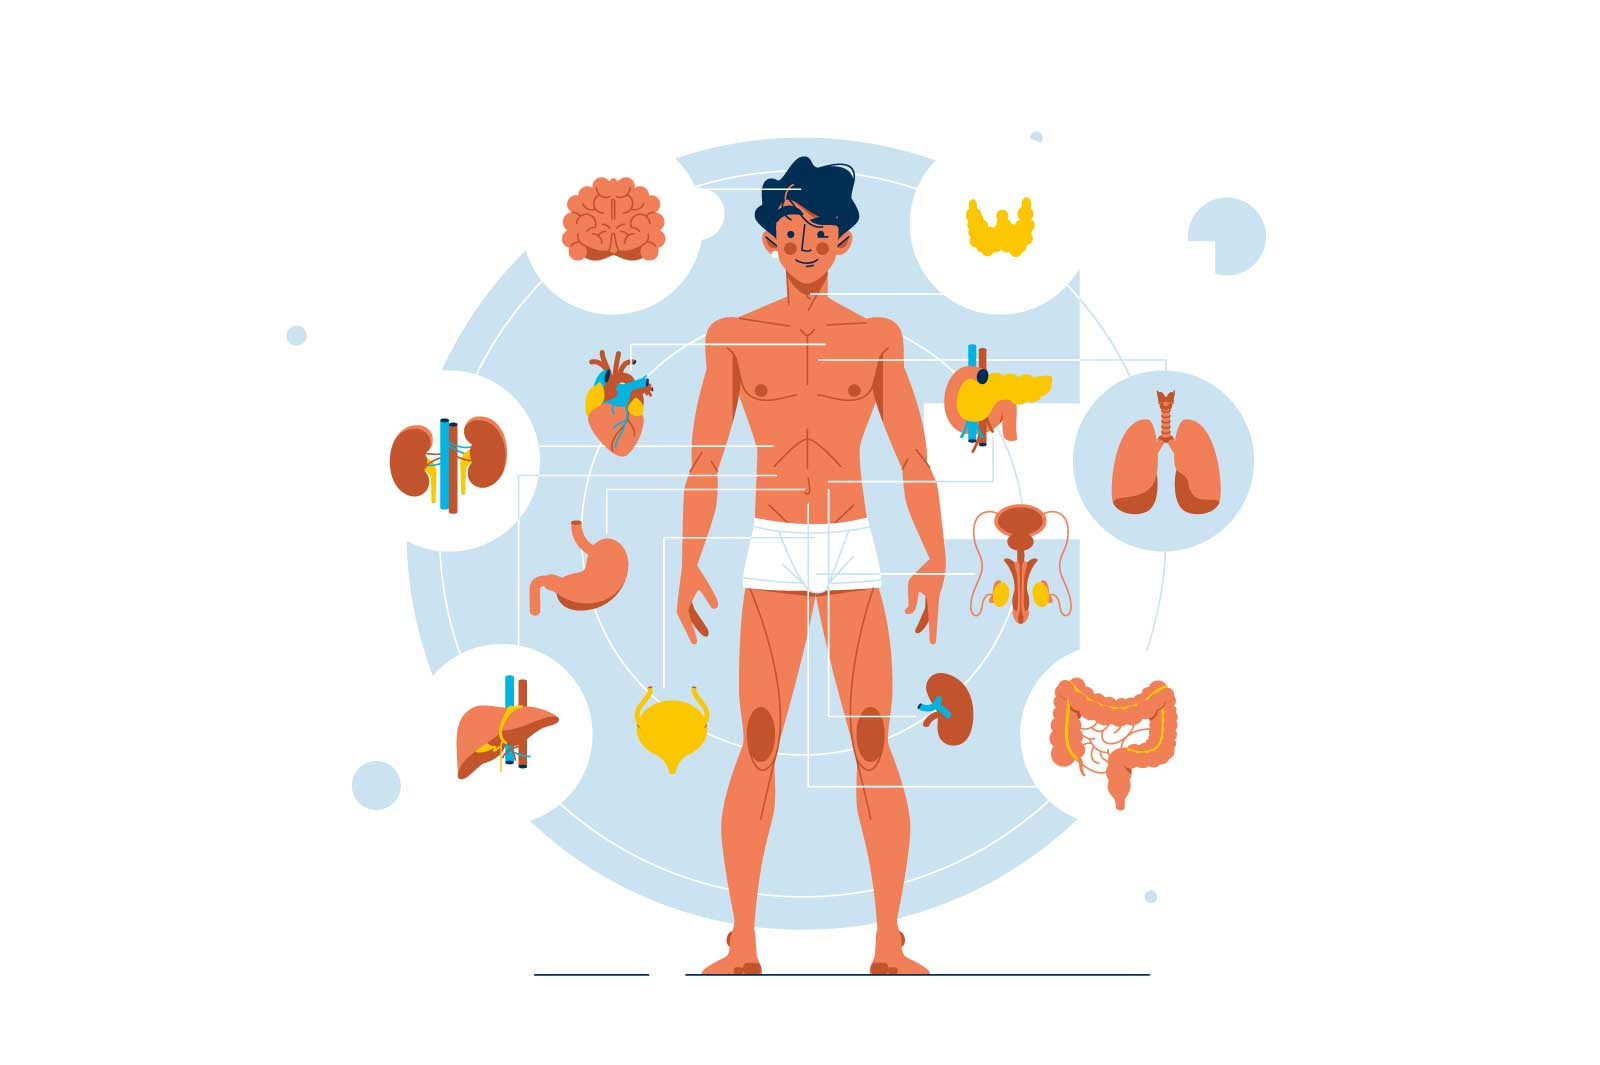 Human body anatomy and structure vector illustration. Visual scheme of healthy human internal organs flat style. Medical and biology concept